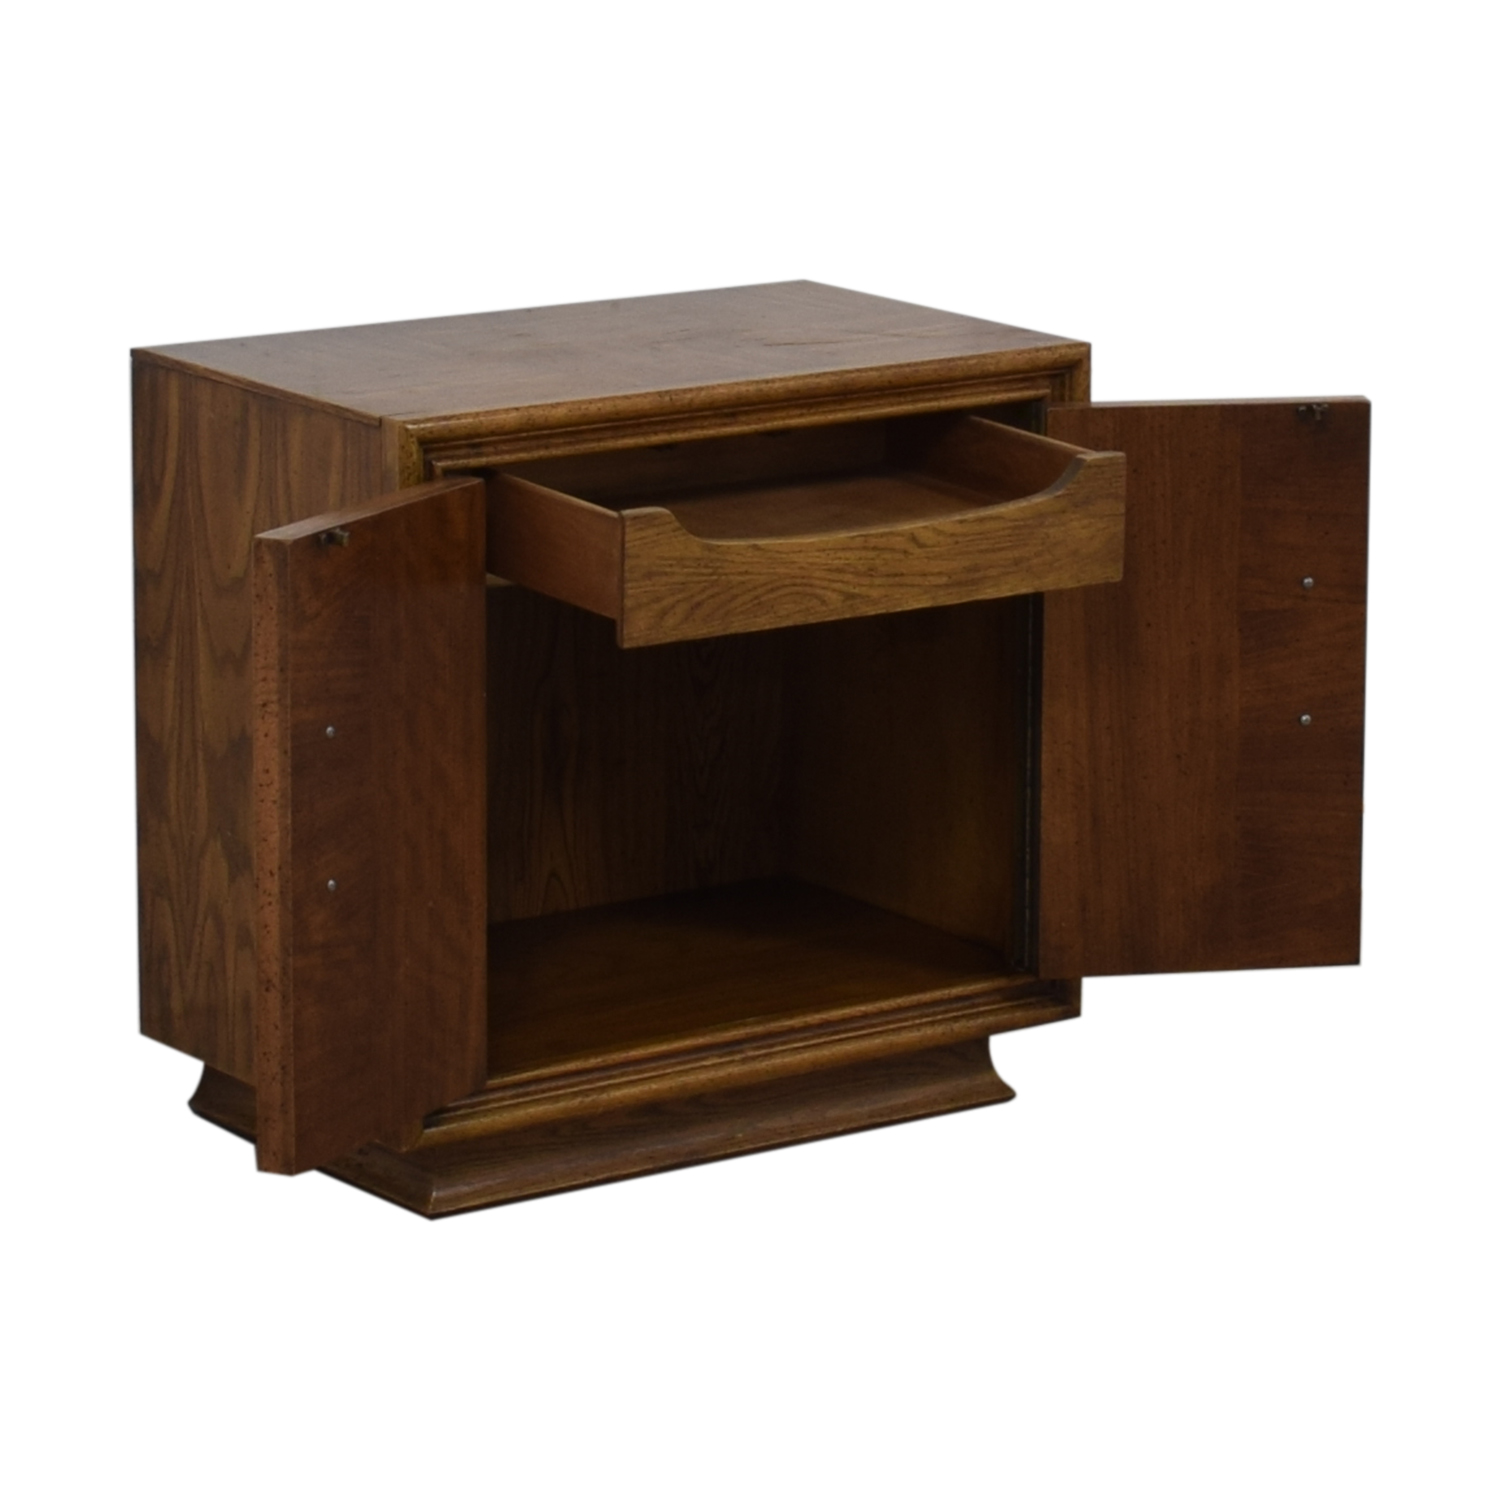 Single Drawer Wood Night Table brown